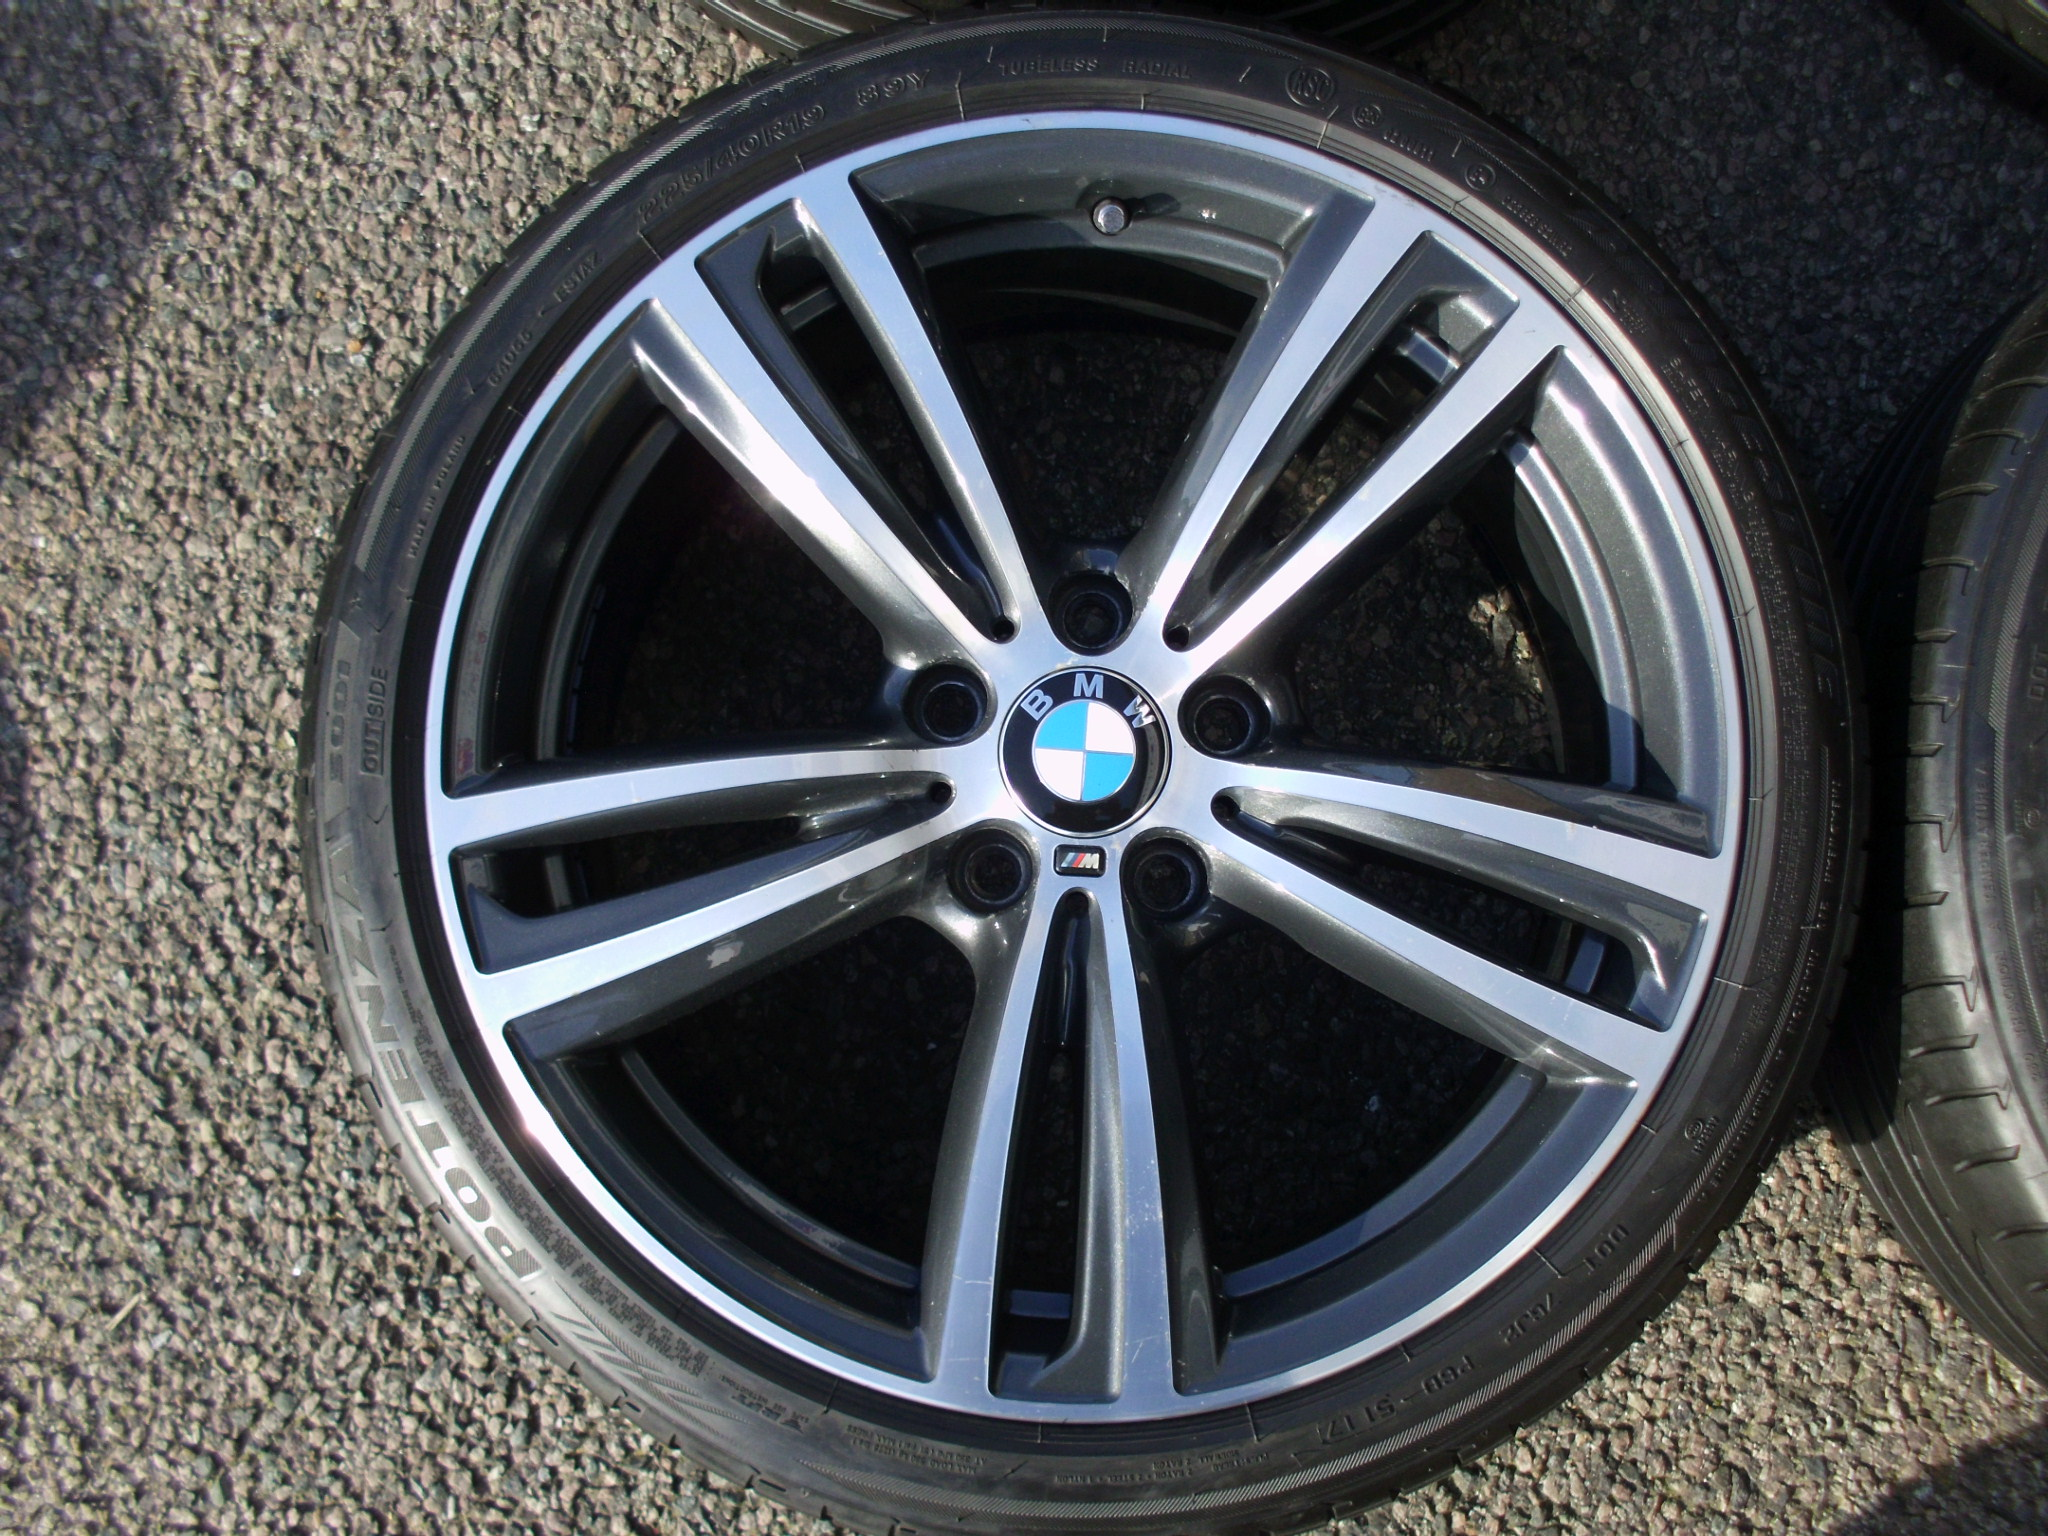 "USED 19"" GENUINE BMW STYLE 442 F30/31 M DOUBLE SPOKE ALLOY WHEELS, GC INC GOOD BRIDGESTONE RUNFLAT TYRES"